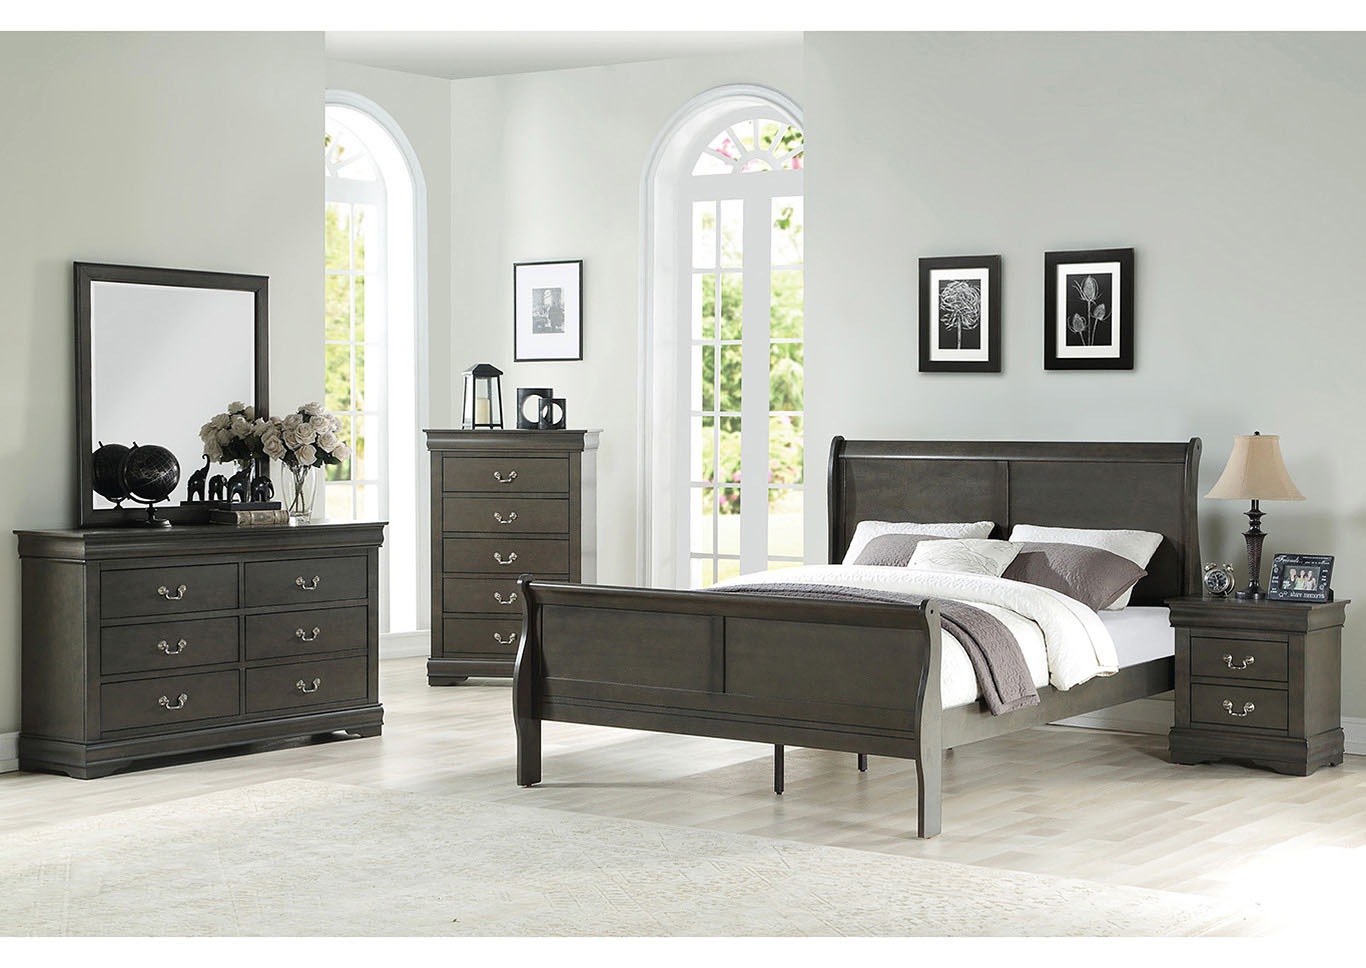 Louis Philippe Grey Eastern King Sleigh Bed w/Dresser and Mirror,Acme